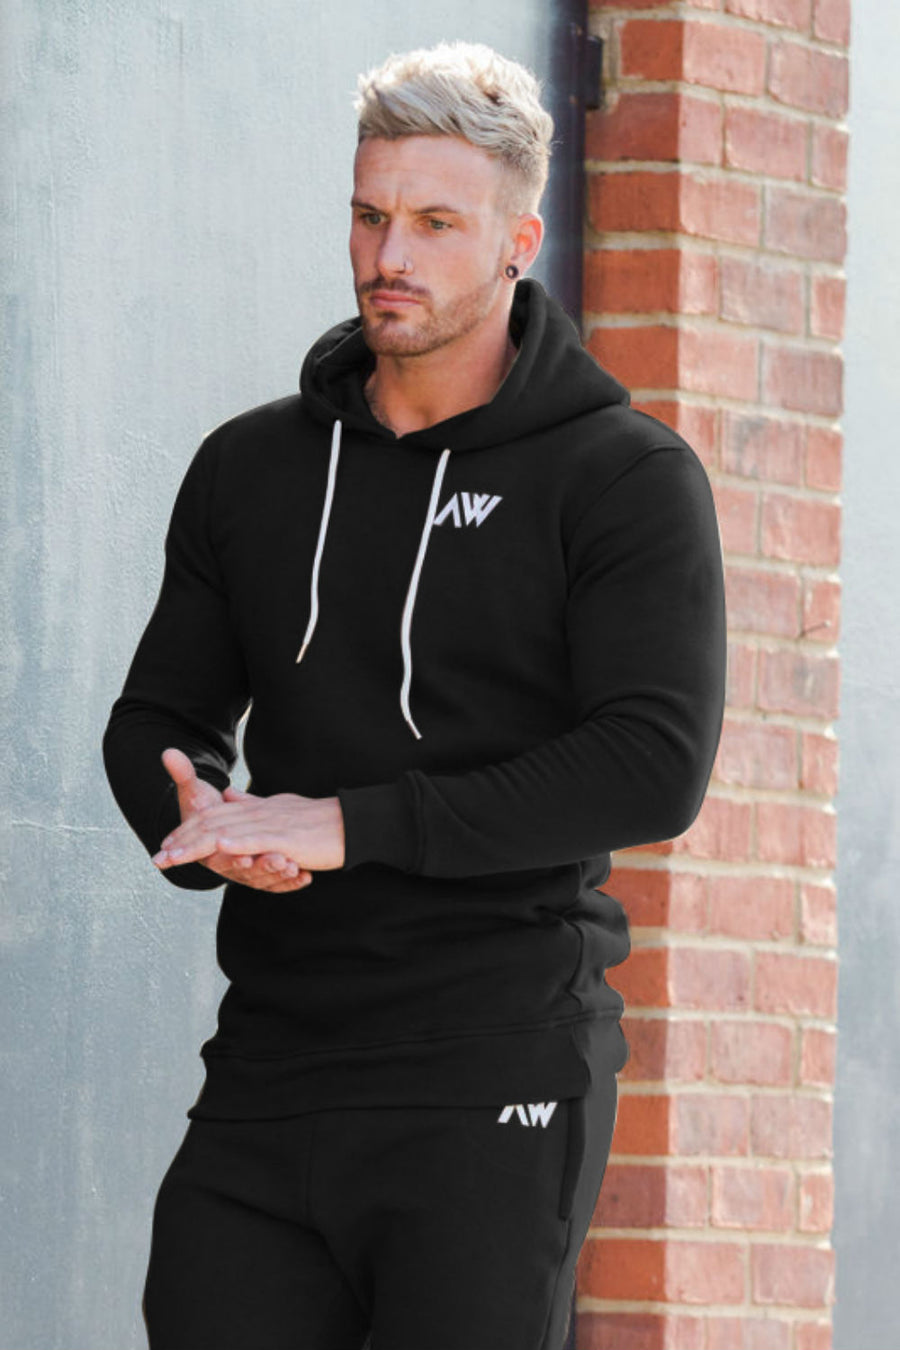 Activewear Aspiring Mens Sleeveless Gym Jogging Activewear Tracksuit Hooded Top Short Bottoms Suit Modern Design Men's Clothing